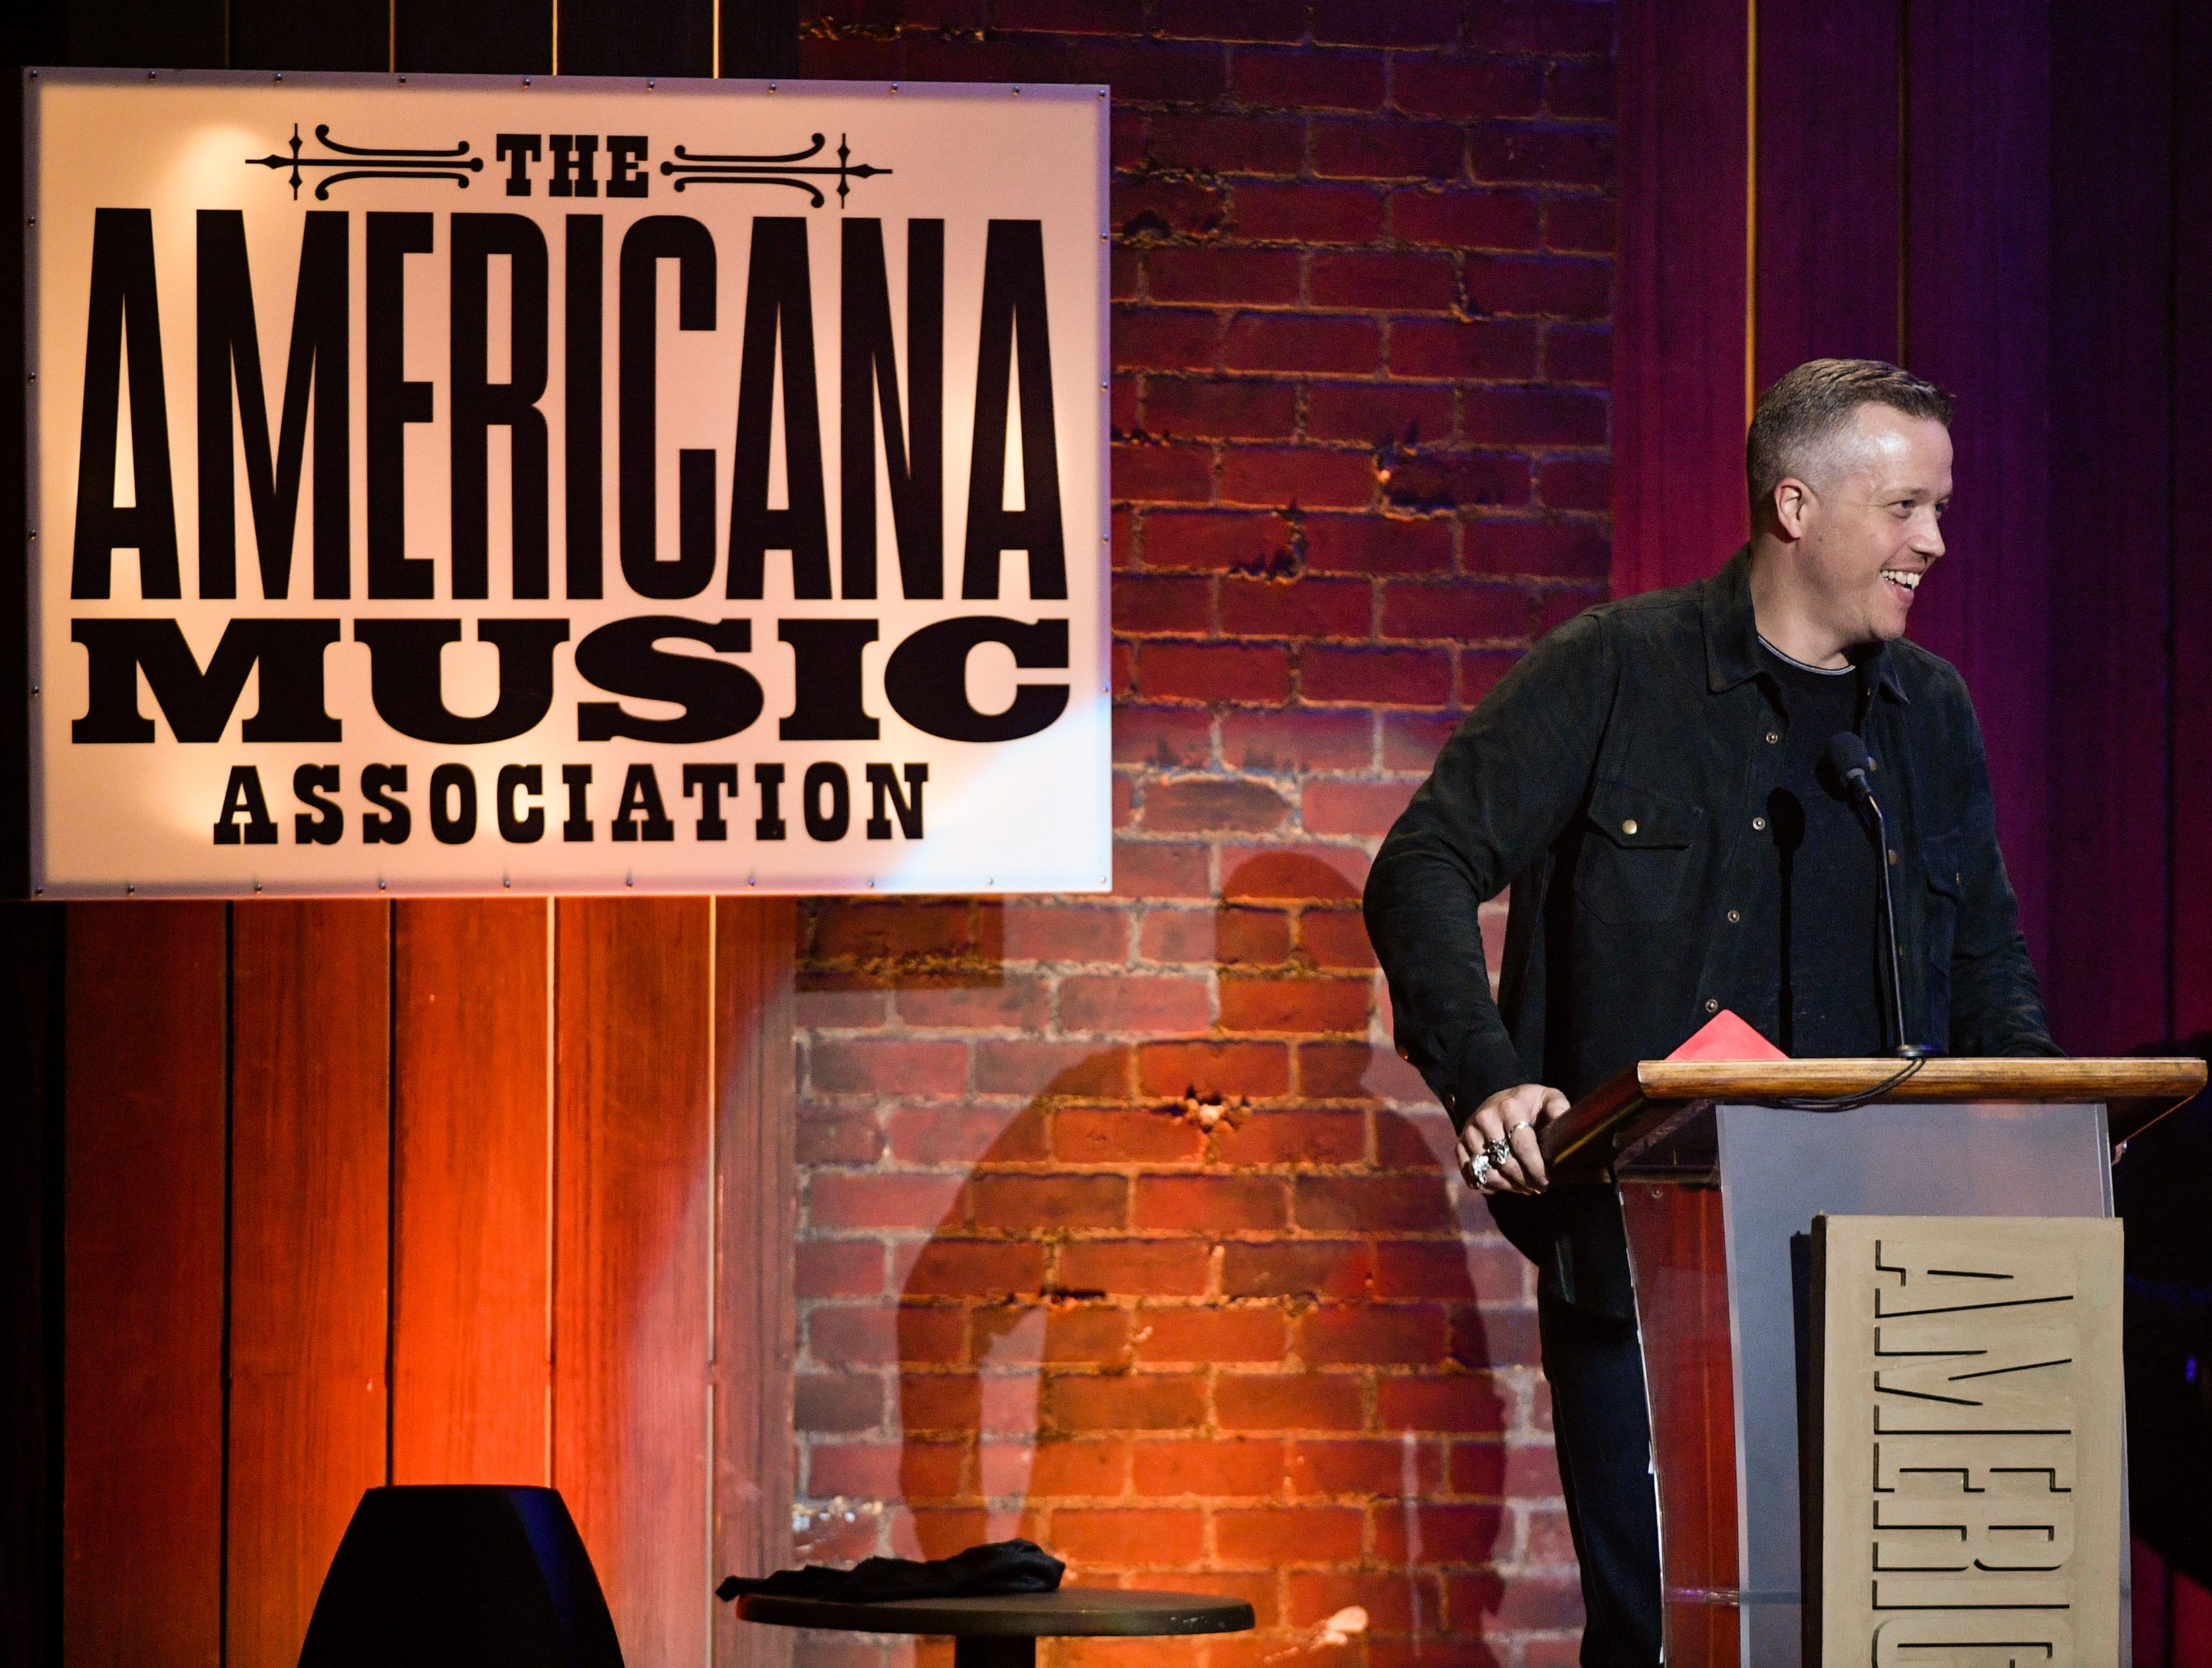 Jason Isbell accepts the Album of the Year award during the 2018 Americana Honors and Awards show at the Ryman Auditorium in Nashville, Tenn., Wednesday, Sept. 12, 2018.